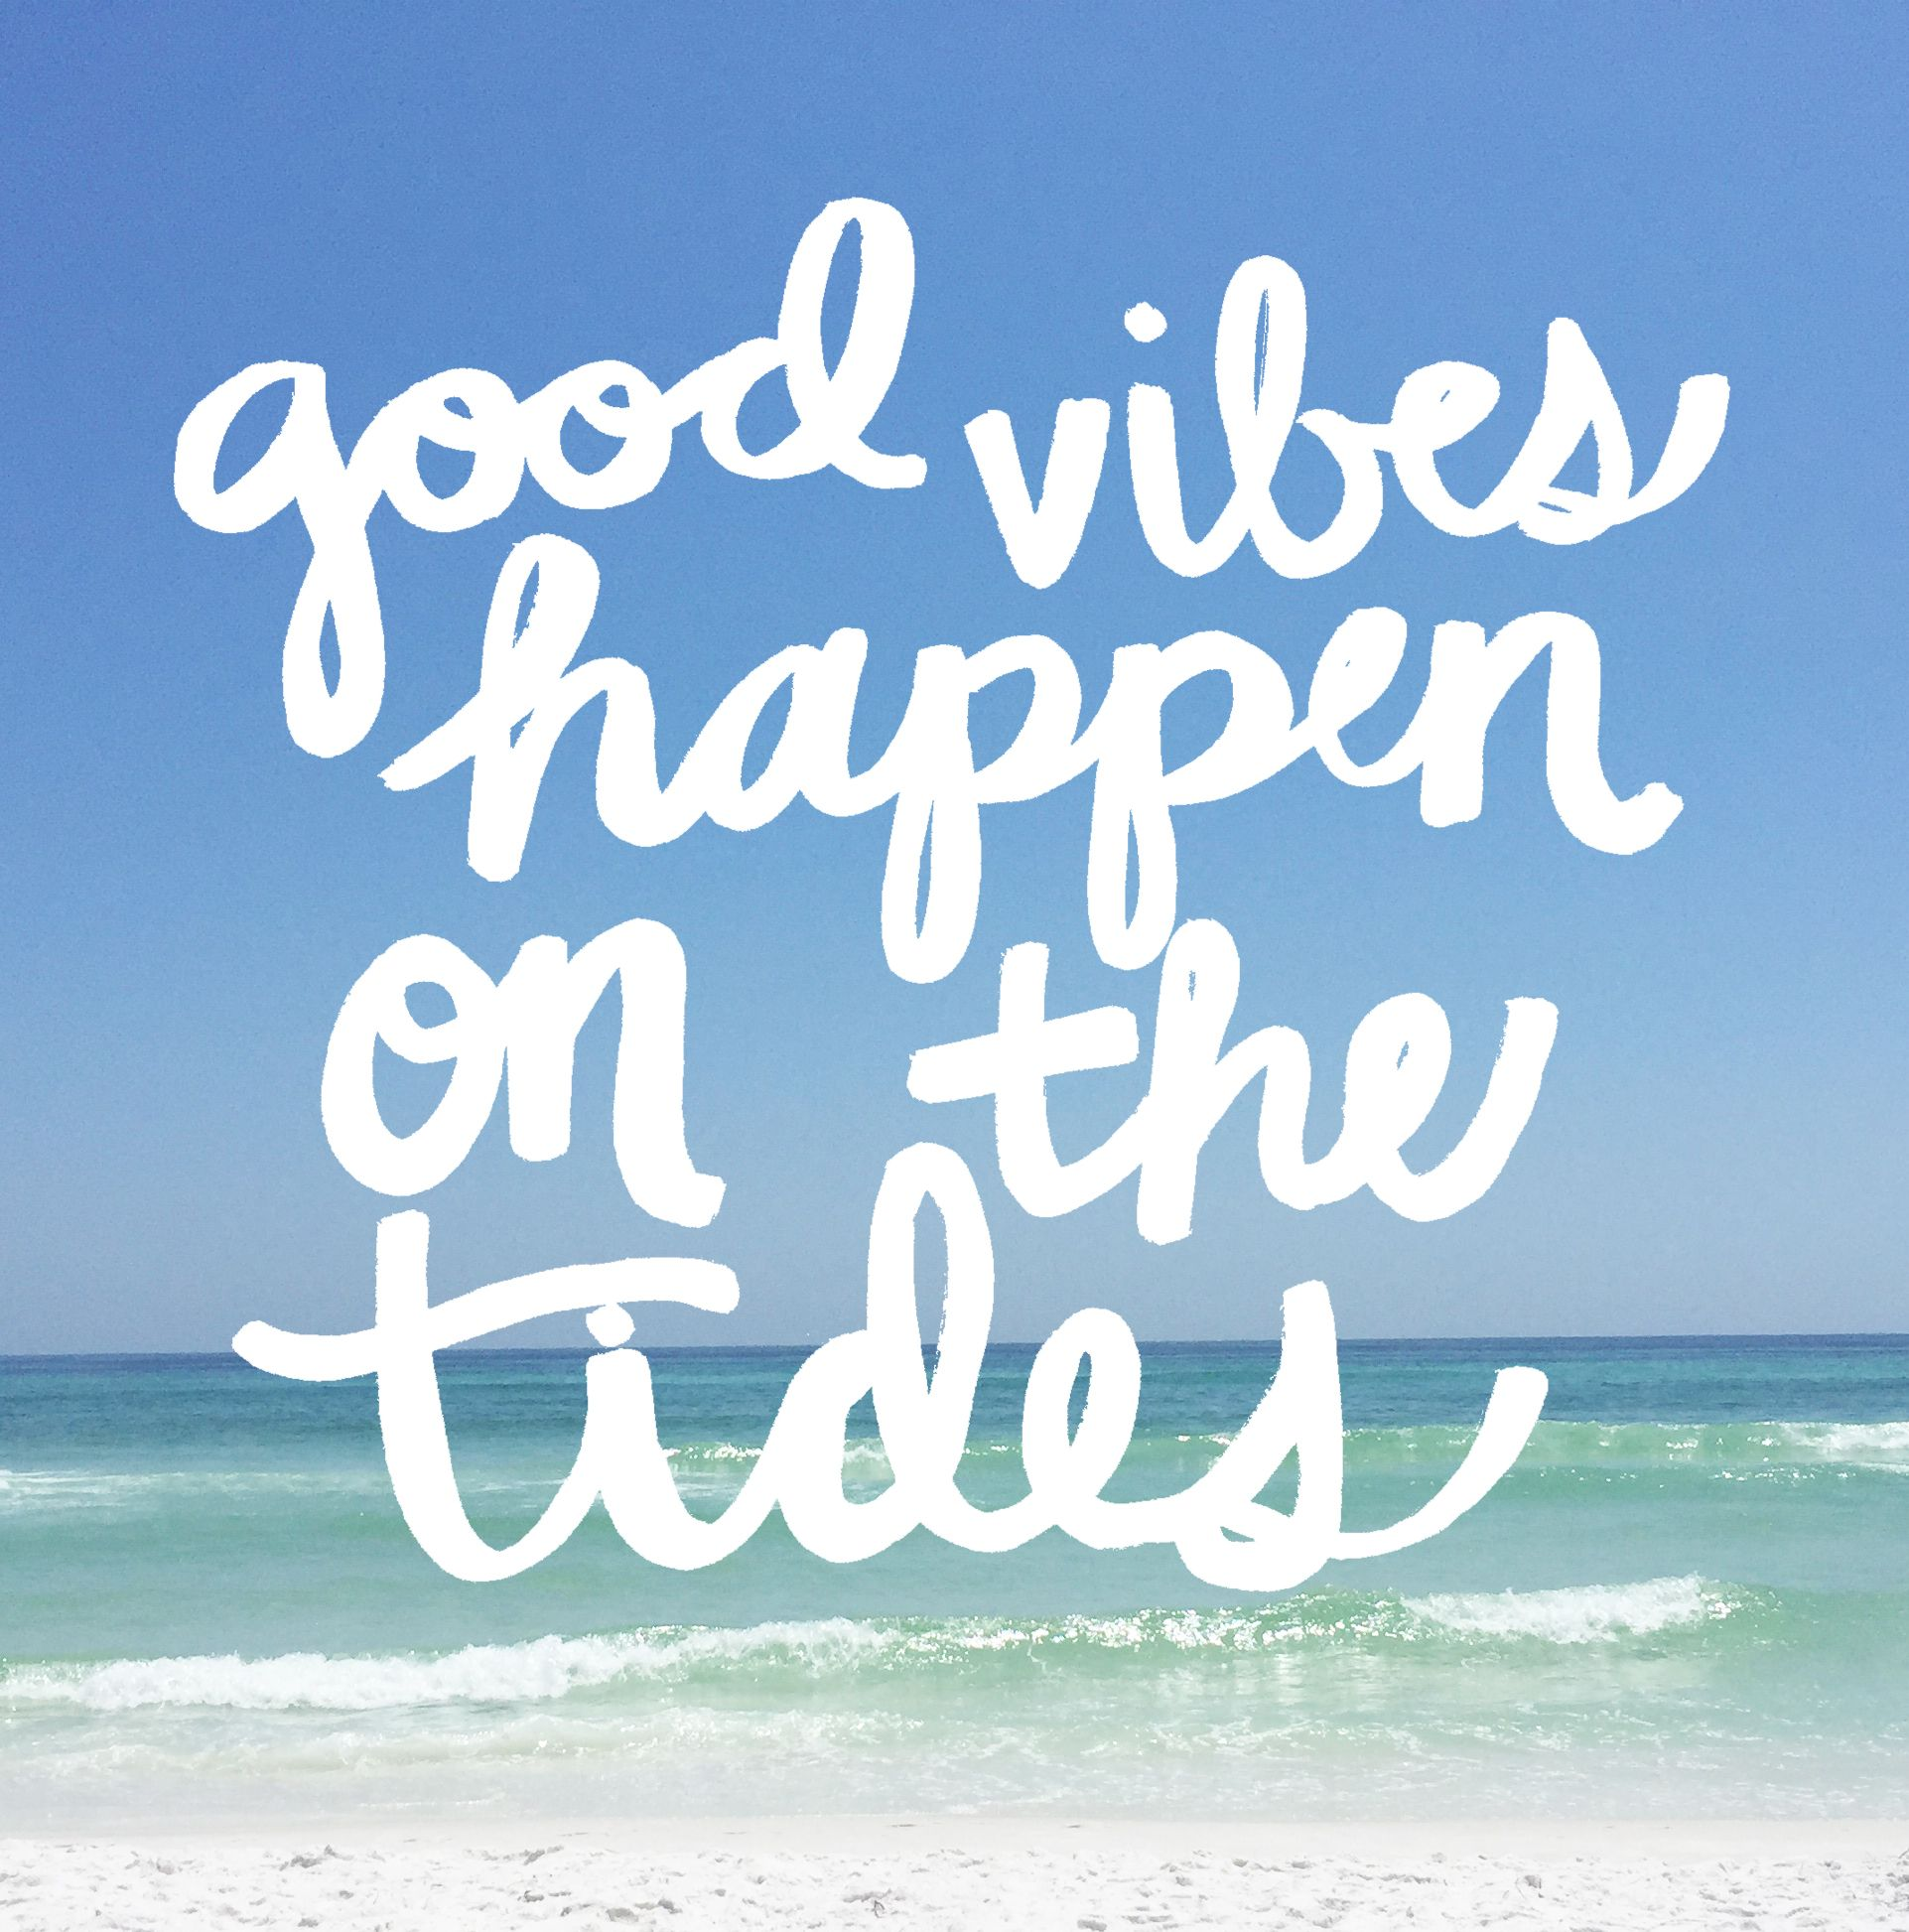 Good vibes happen on the high tides Beach instagram